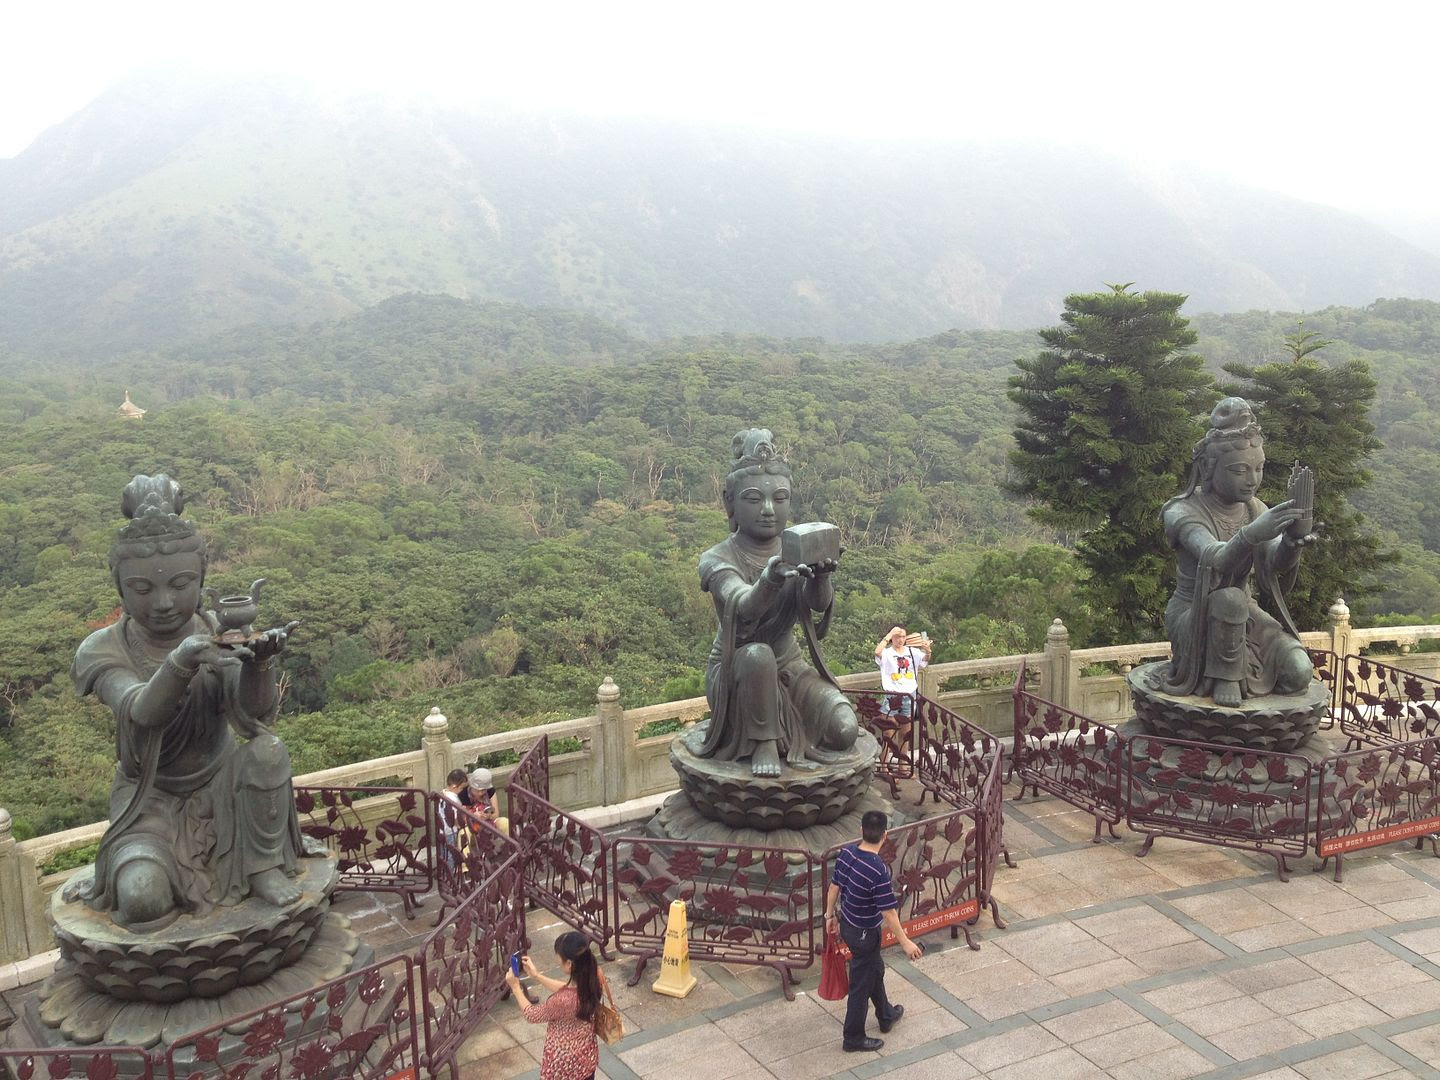 Goddesses at Big Buddha in Hong Kong photo 2013-10-01163652_zpseda3f036.jpg